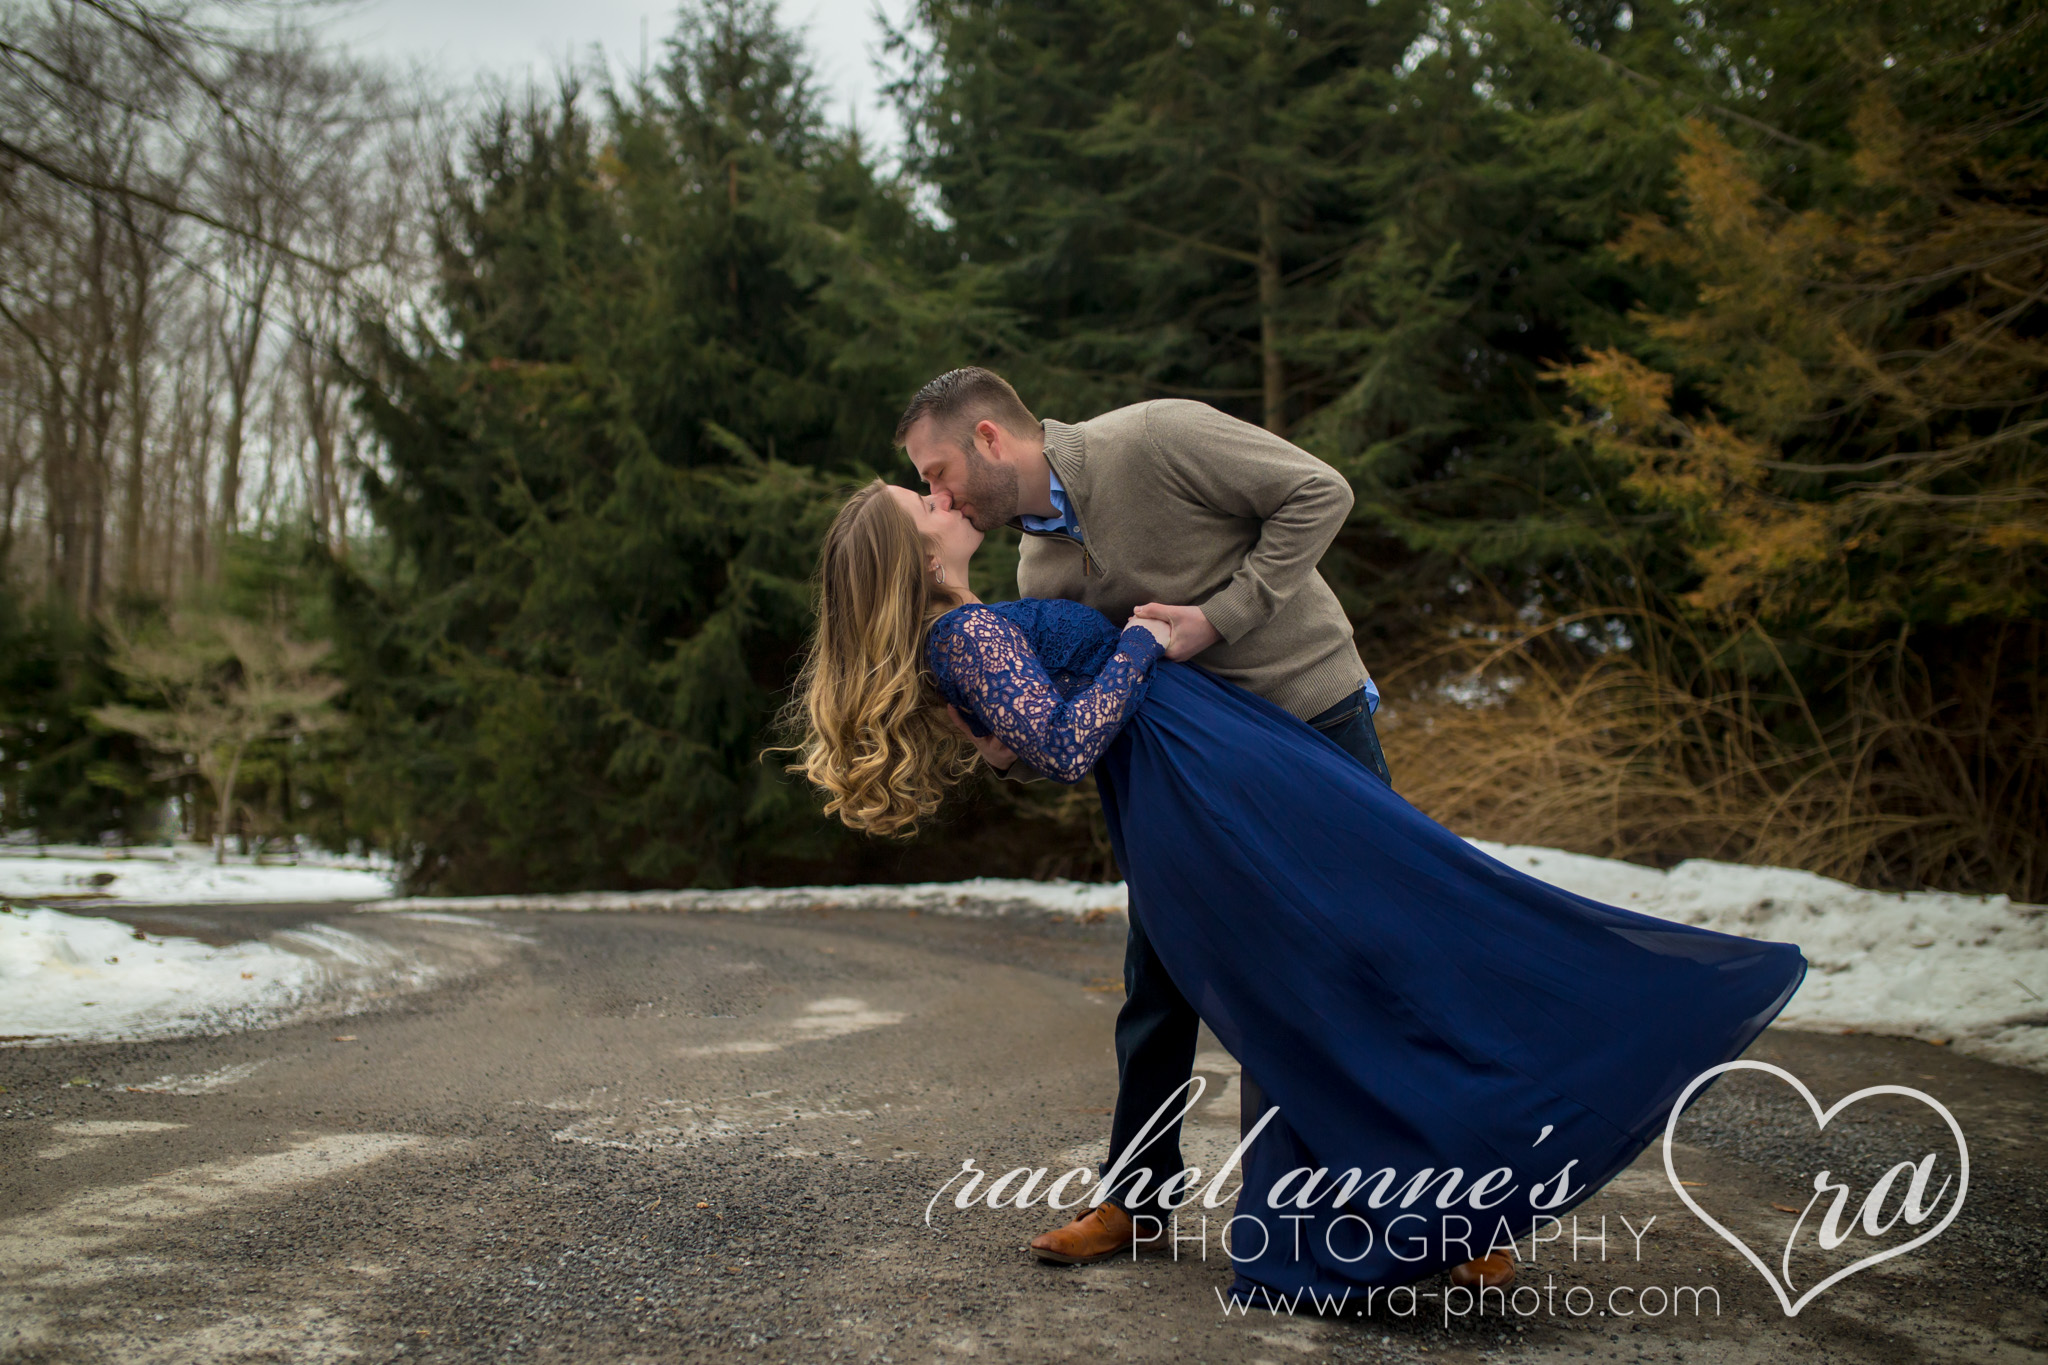 052-JKM-DUBOIS-PA-ENGAGEMENT-PHOTOGRAPHY.jpg